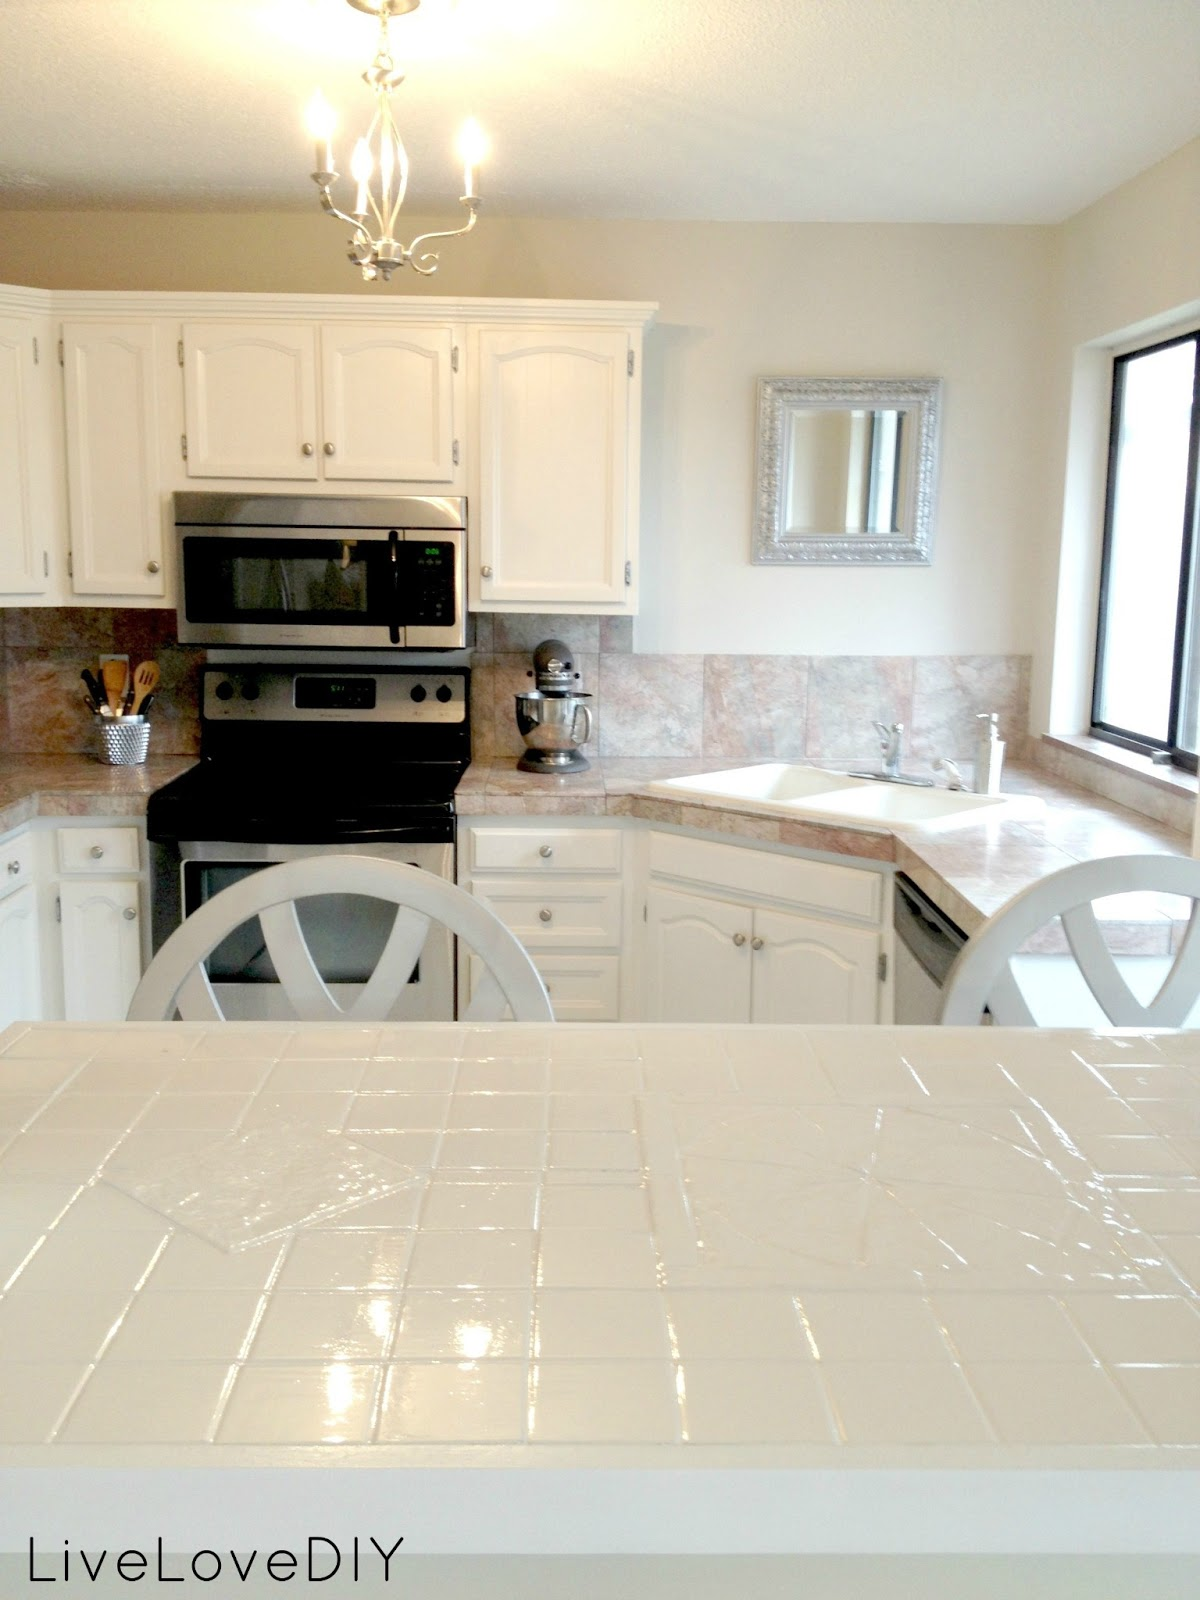 LiveLoveDIY: How To Paint Tile Countertops